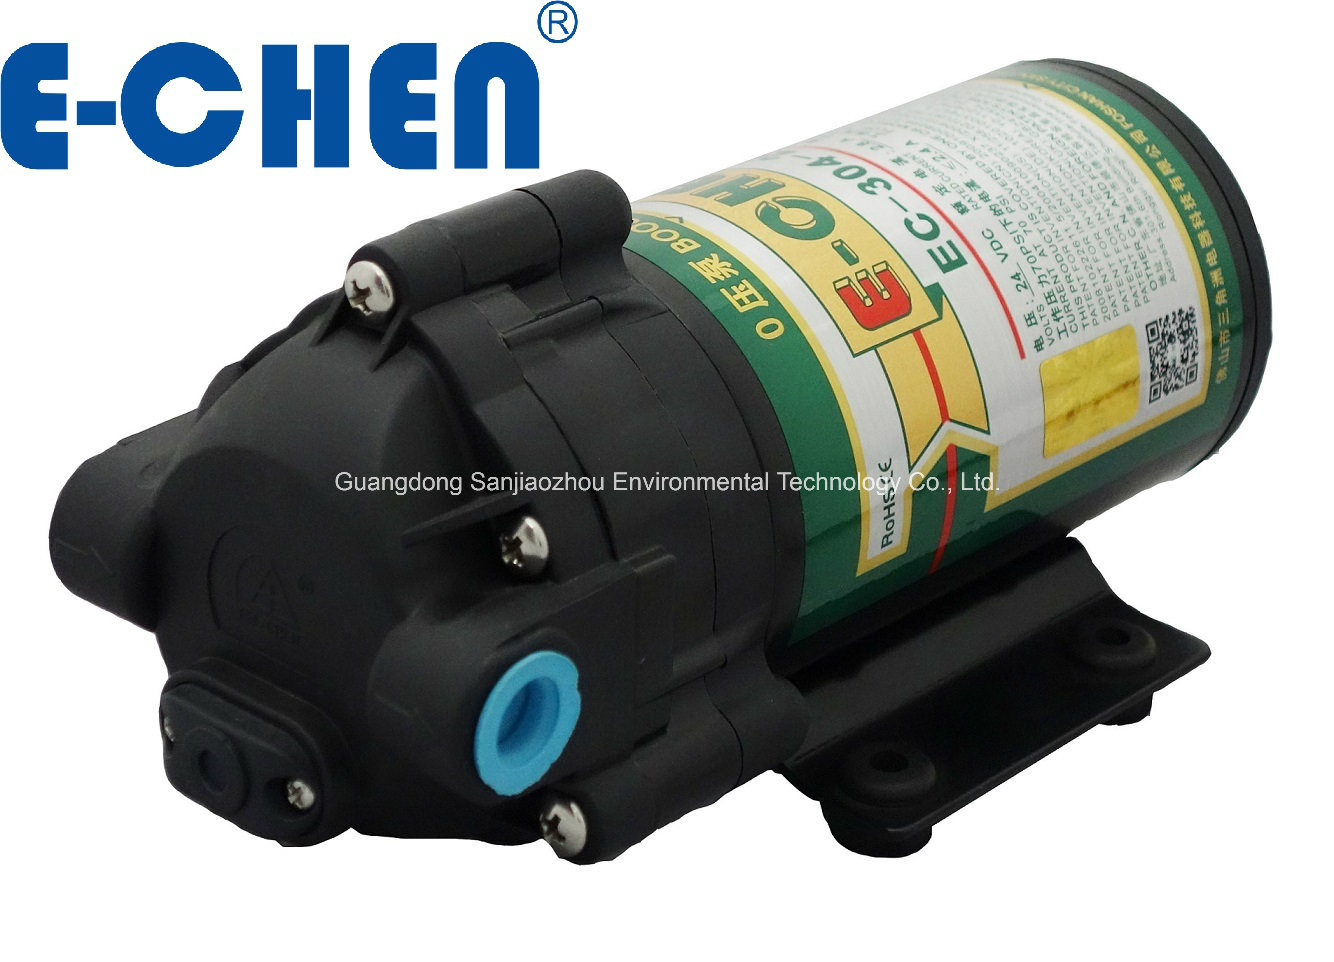 E-Chen 304 Series 200gpd Diaphragm RO Booster Pump - Designed for 0 Inlet Pressure Water Pump